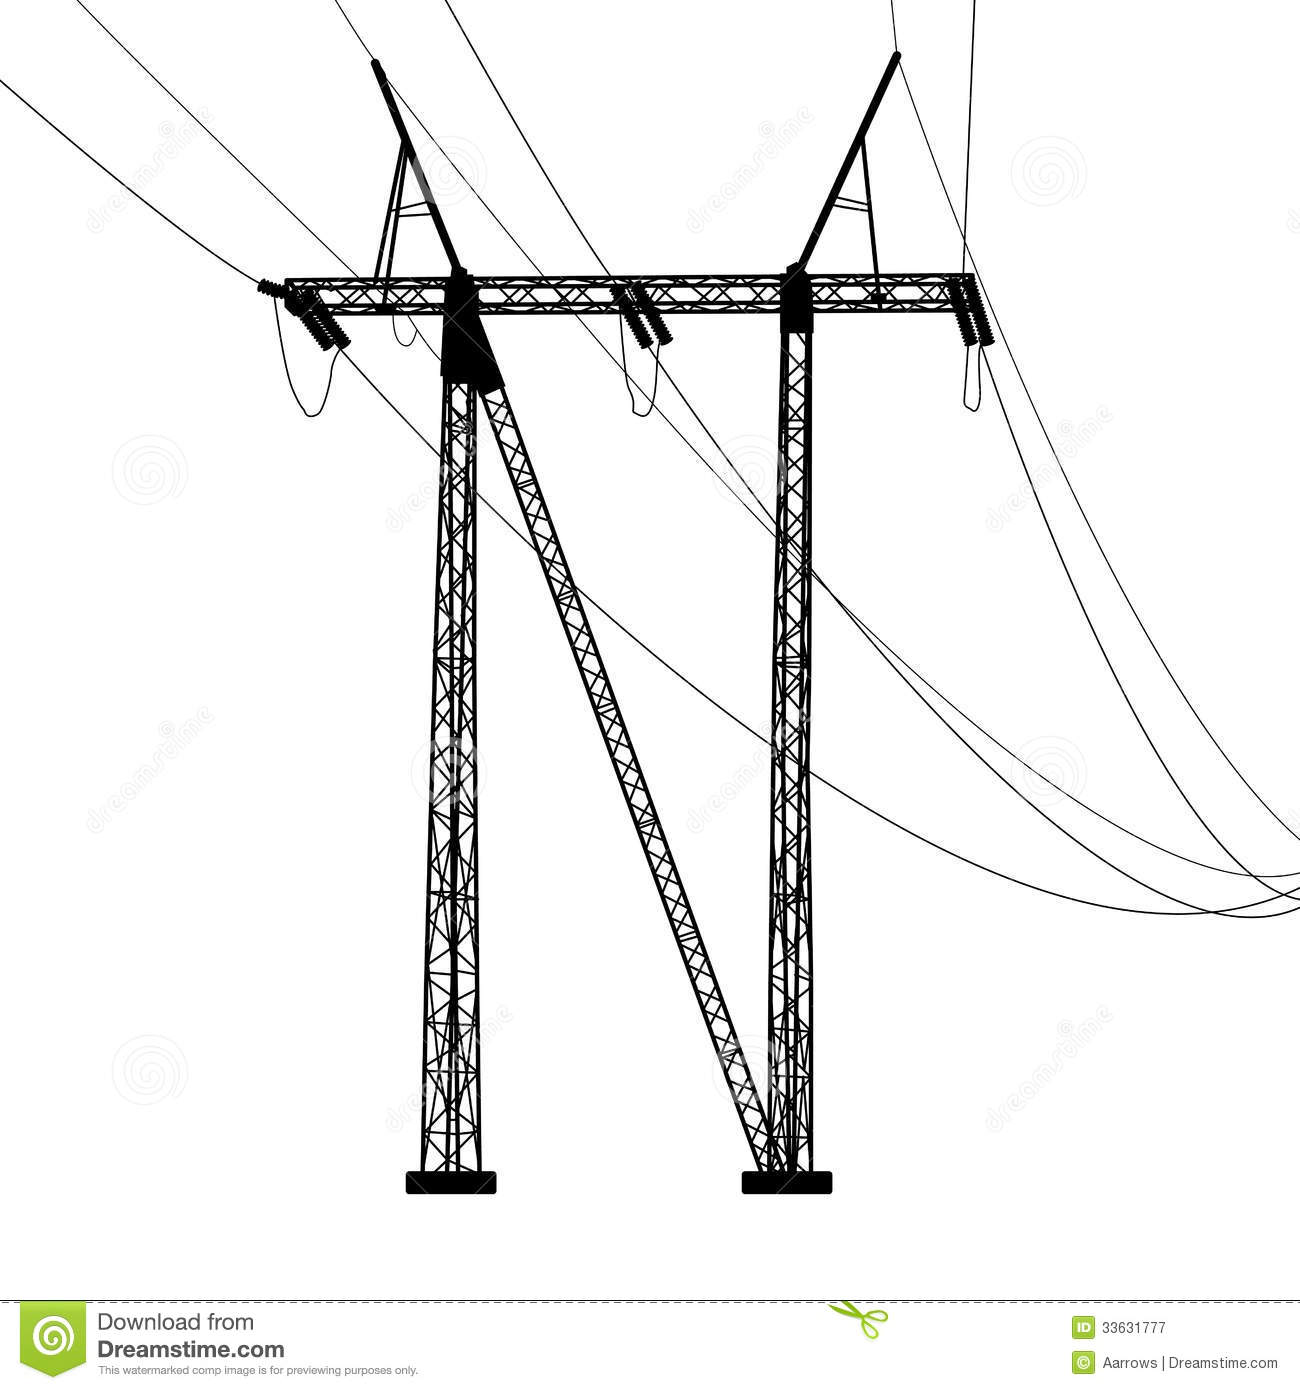 Voltage Power Lines Stock Vector Illustration Of Line